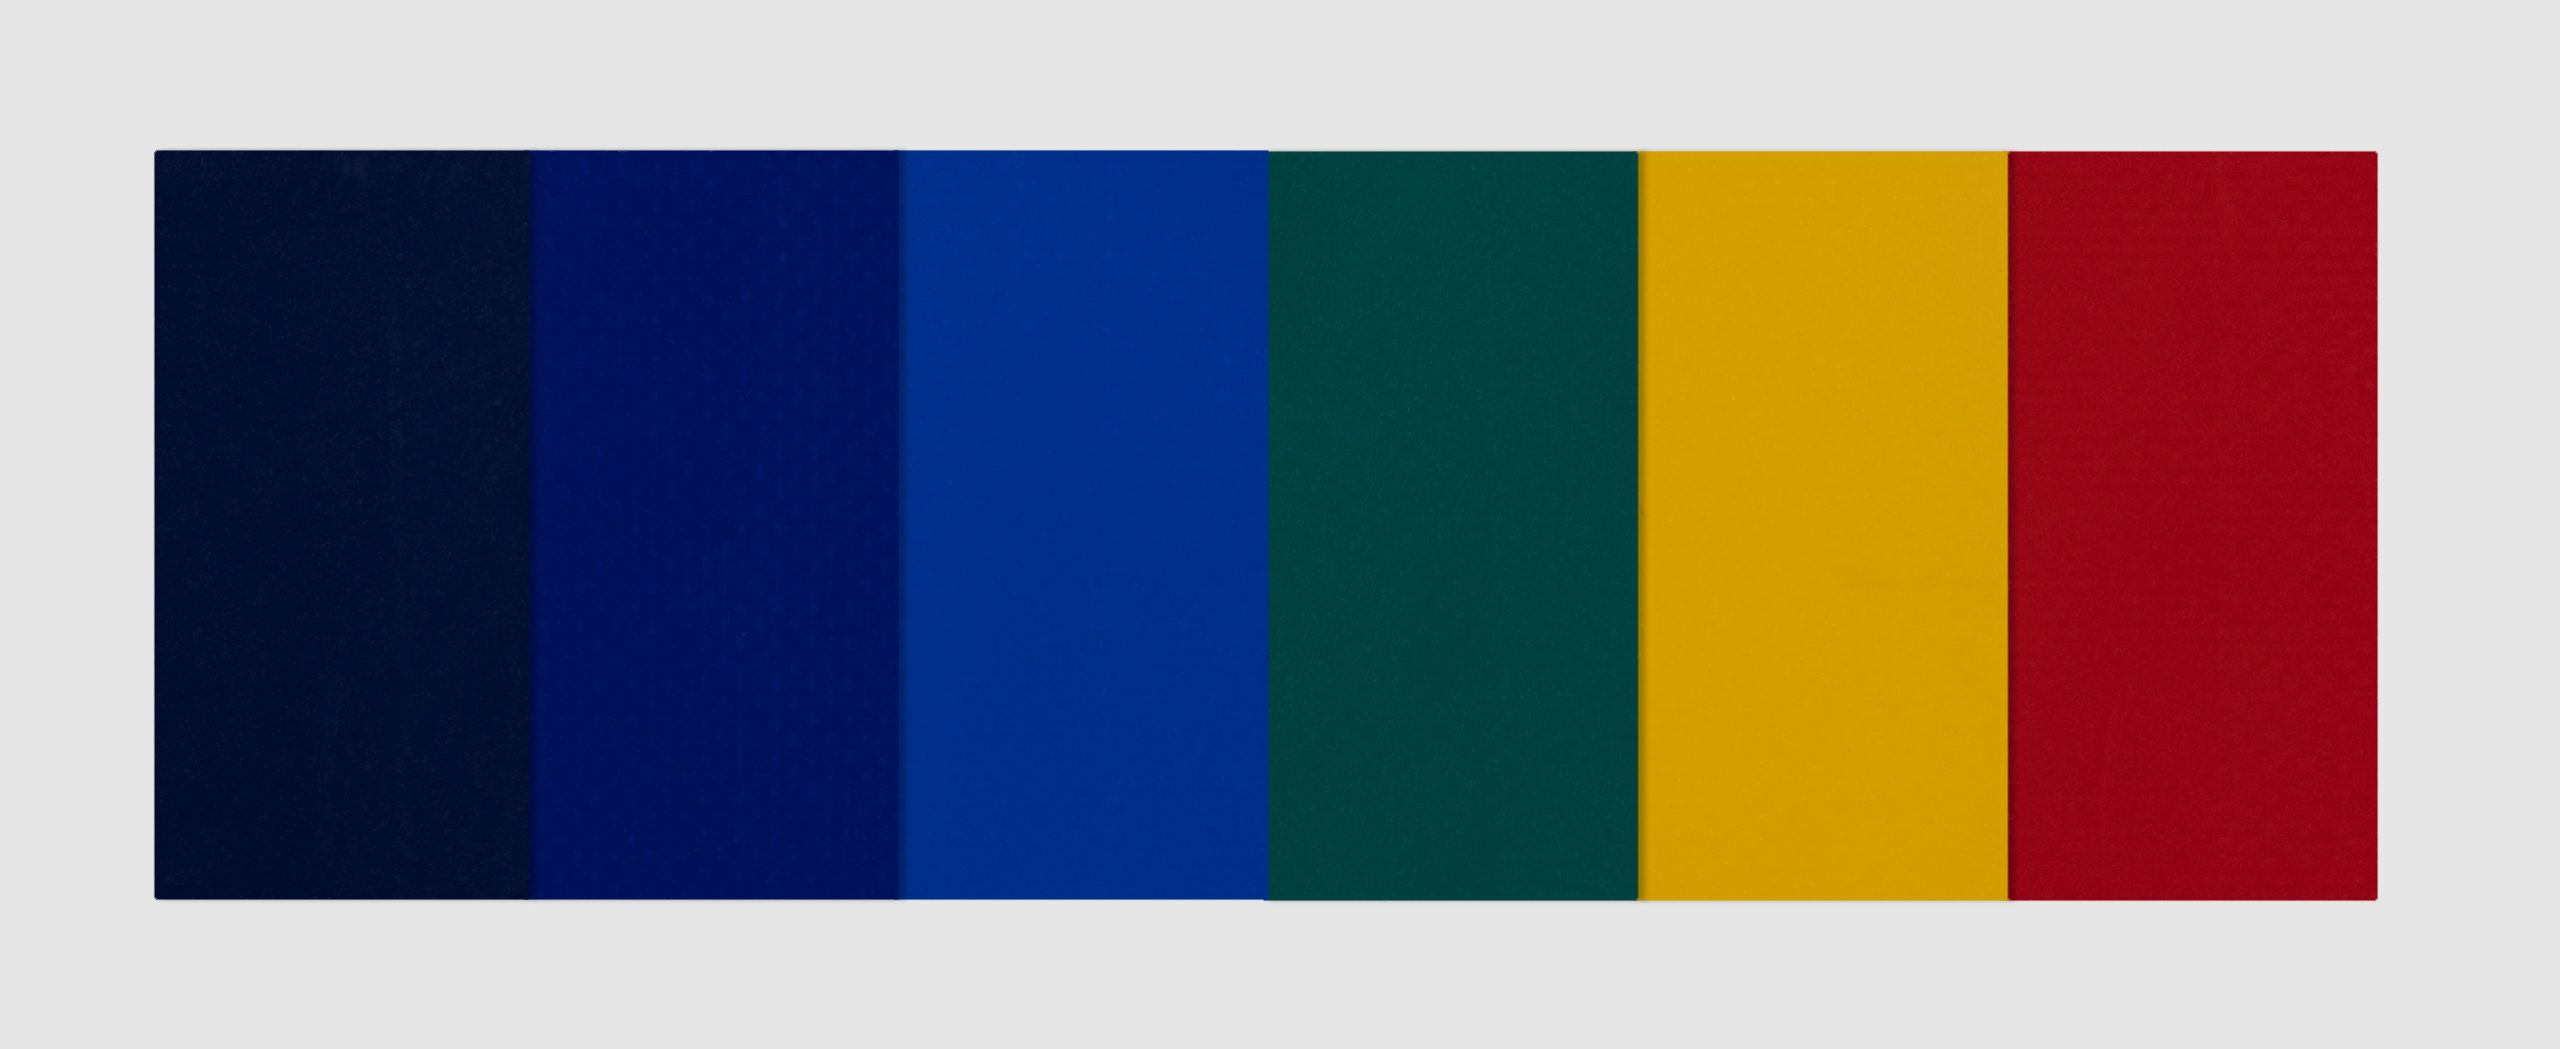 Matte PVC Fabrics in navy, dark blue, mid blue, green, yellow and red